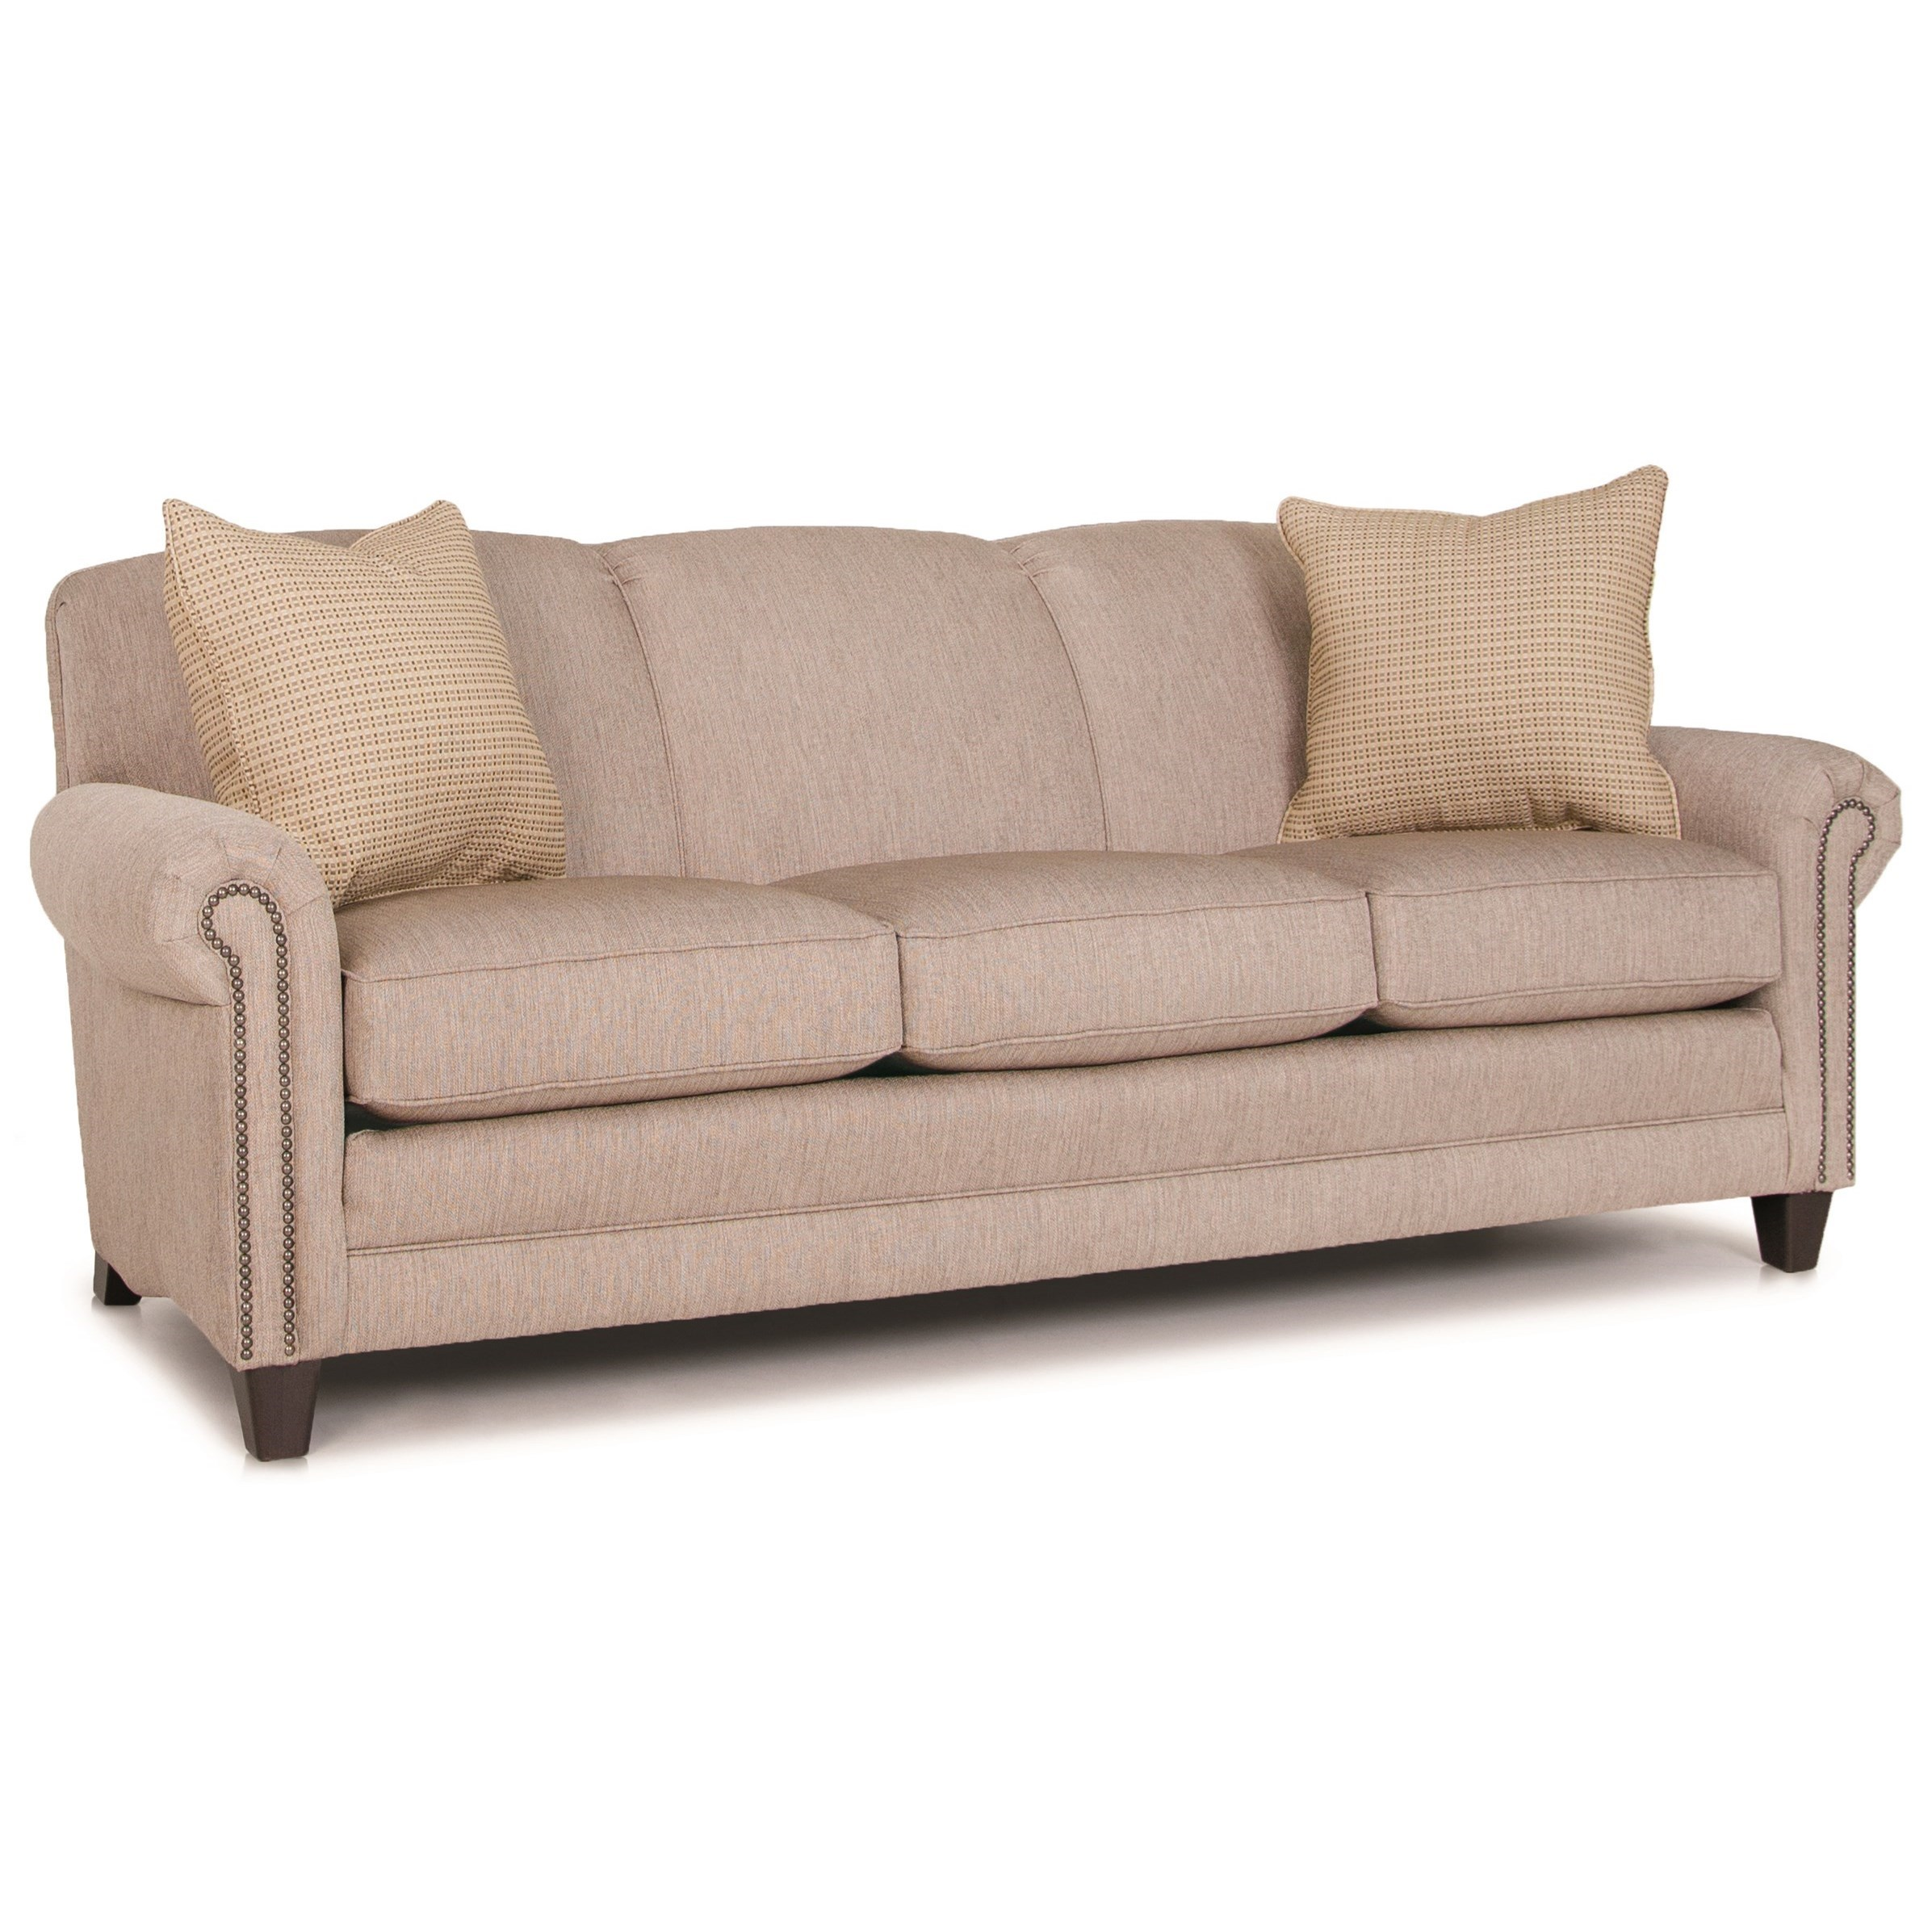 397 Stationary Sofa by Smith Brothers at Rooms for Less